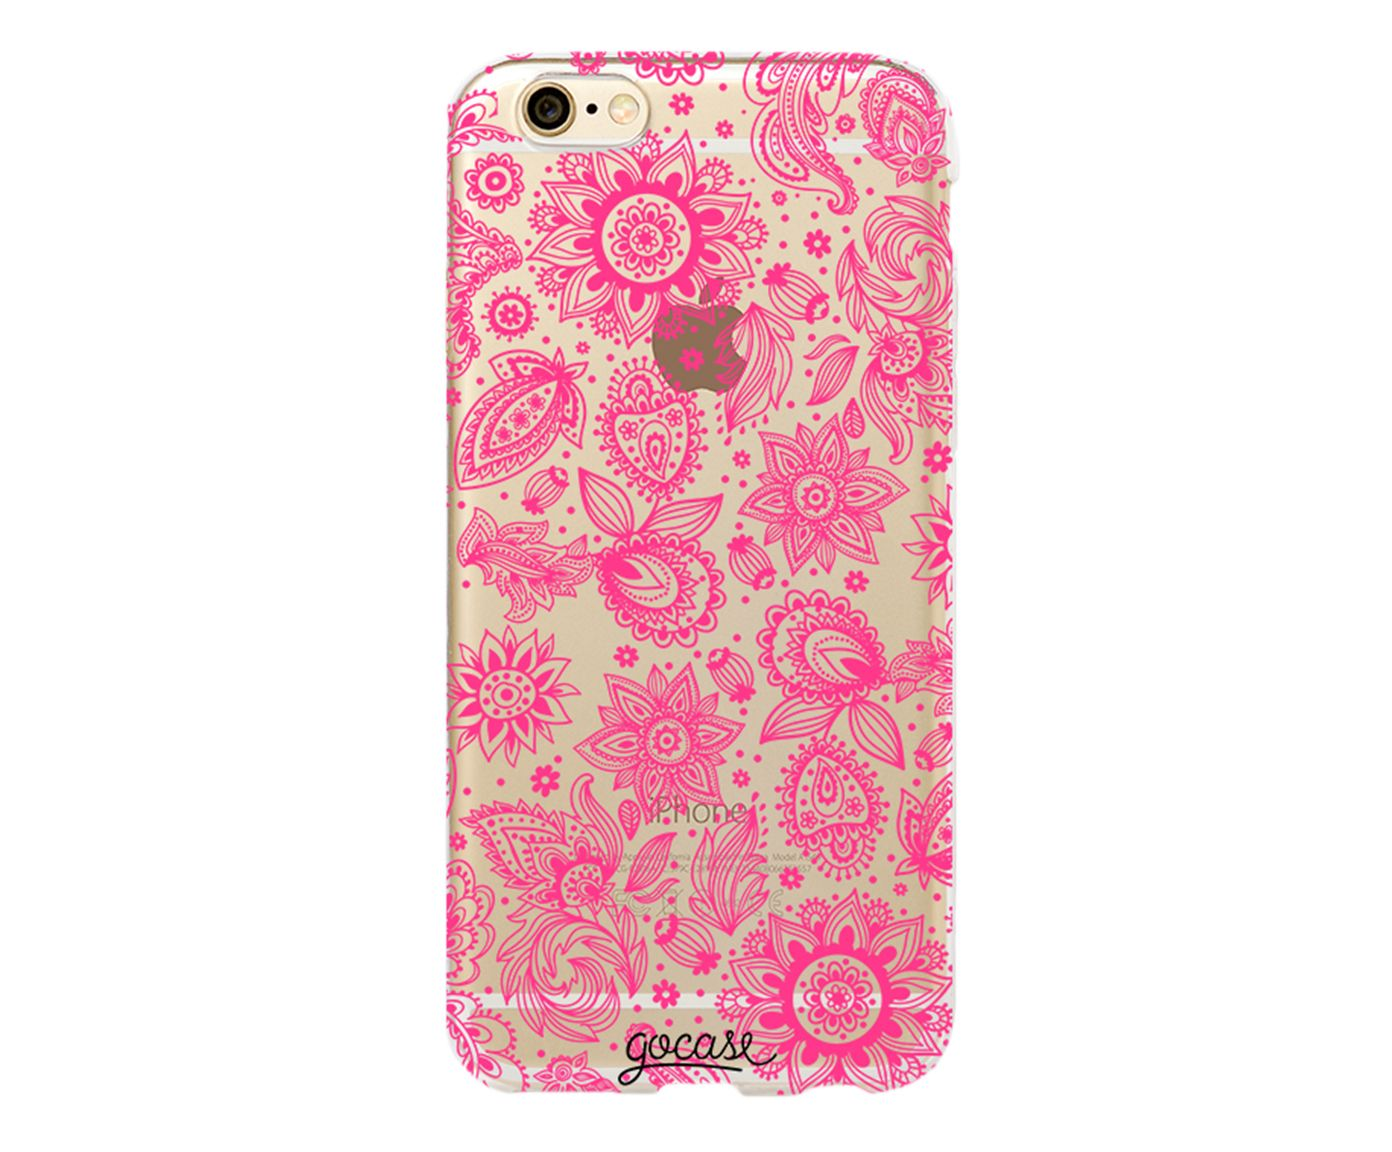 Case Renda Pink - Para iPhone 6 Plus | Westwing.com.br